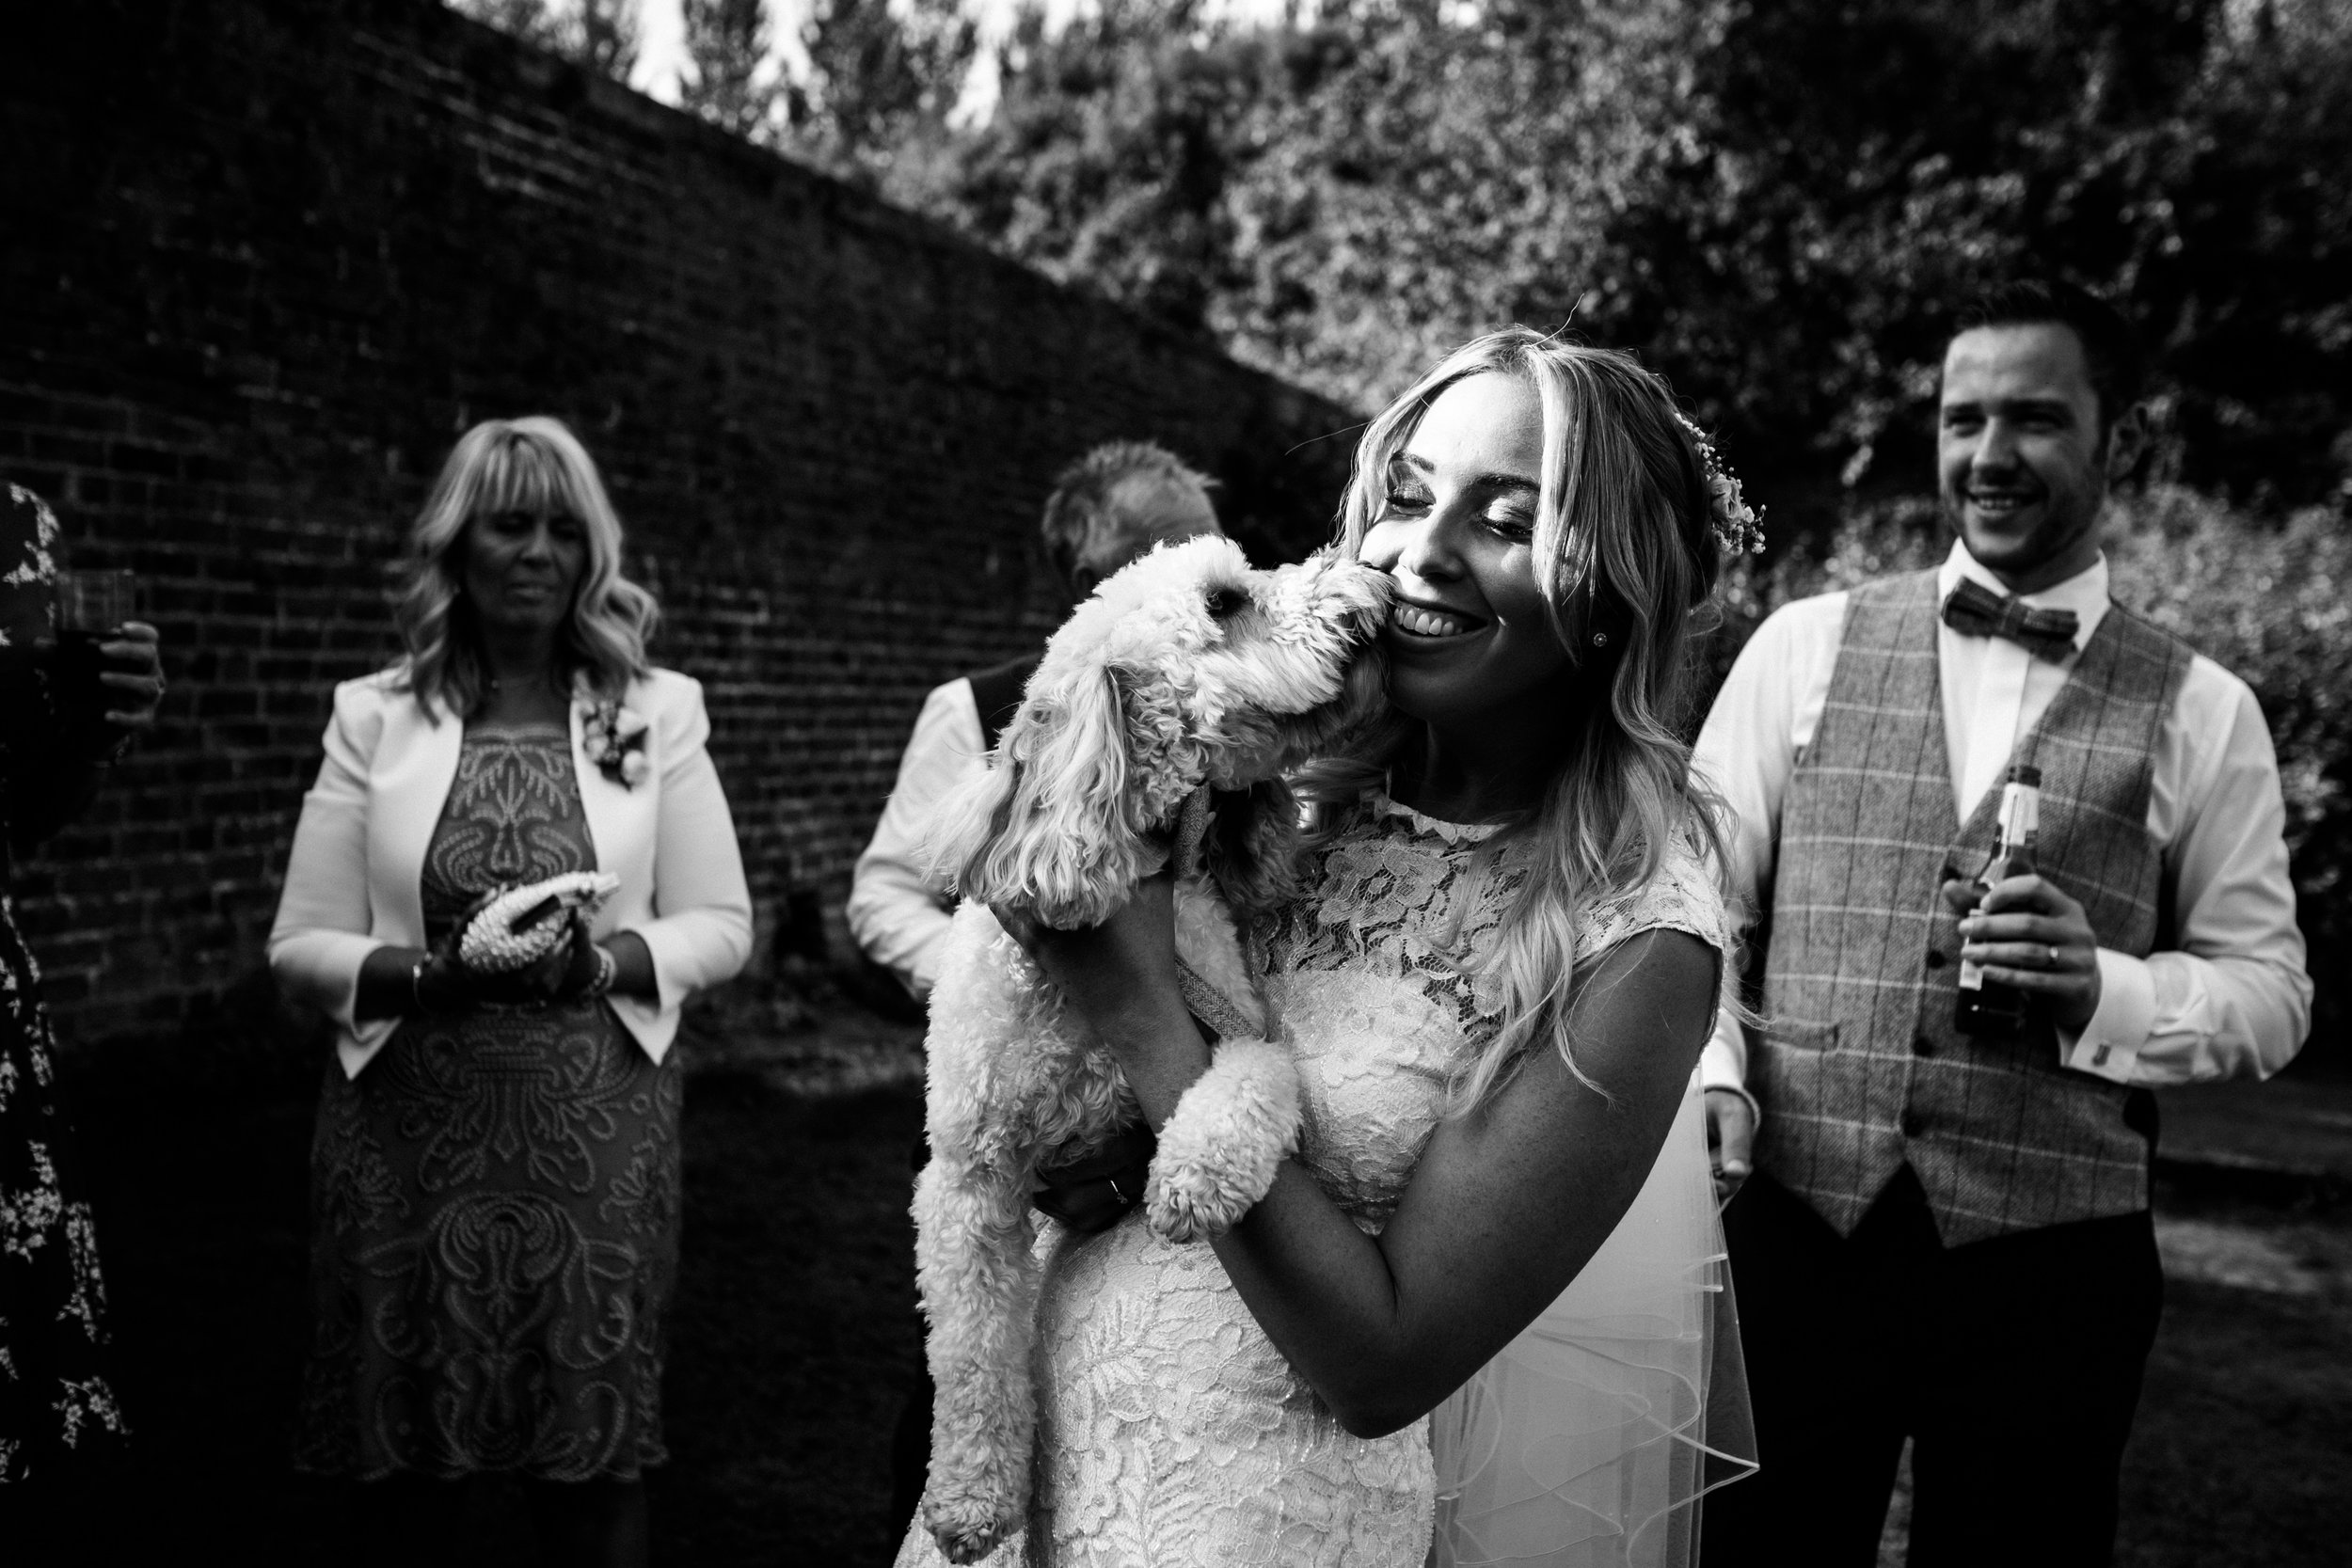 Summer Documentary Wedding Photography at Consall Hall Gardens Outdoor Ceremony Cockapoo dog - Jenny Harper-58.jpg